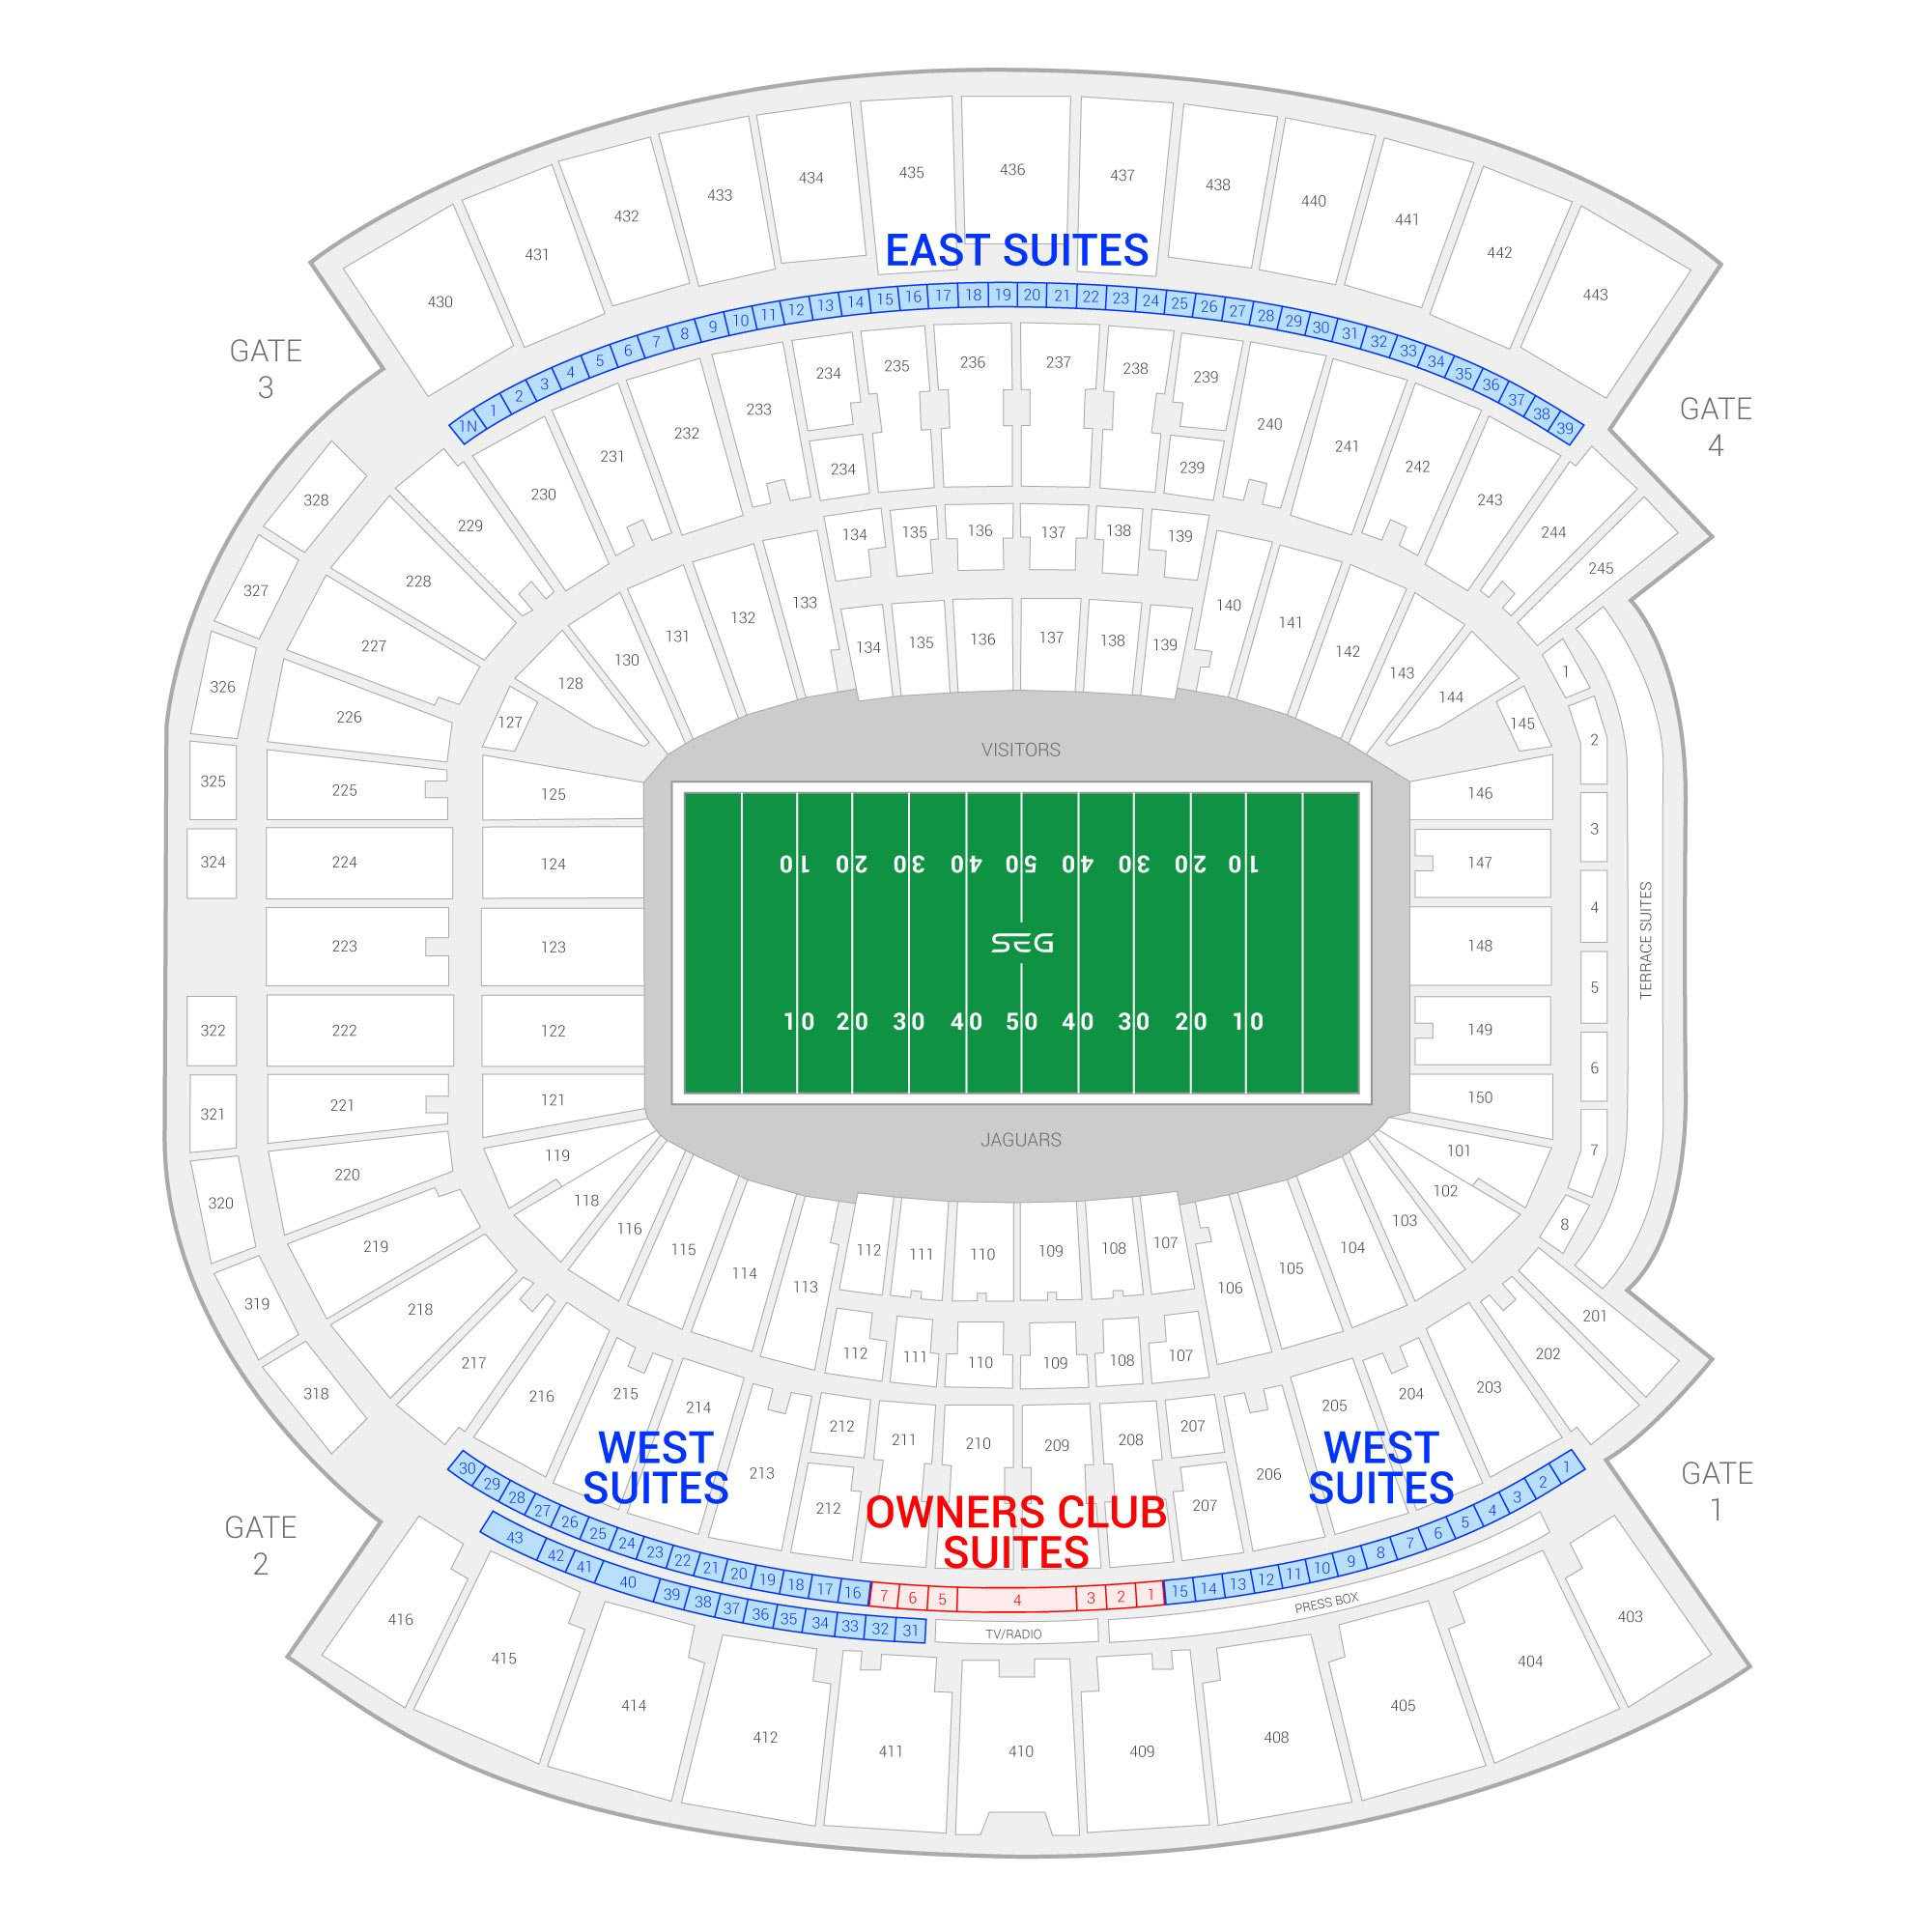 everbank field seating capacity